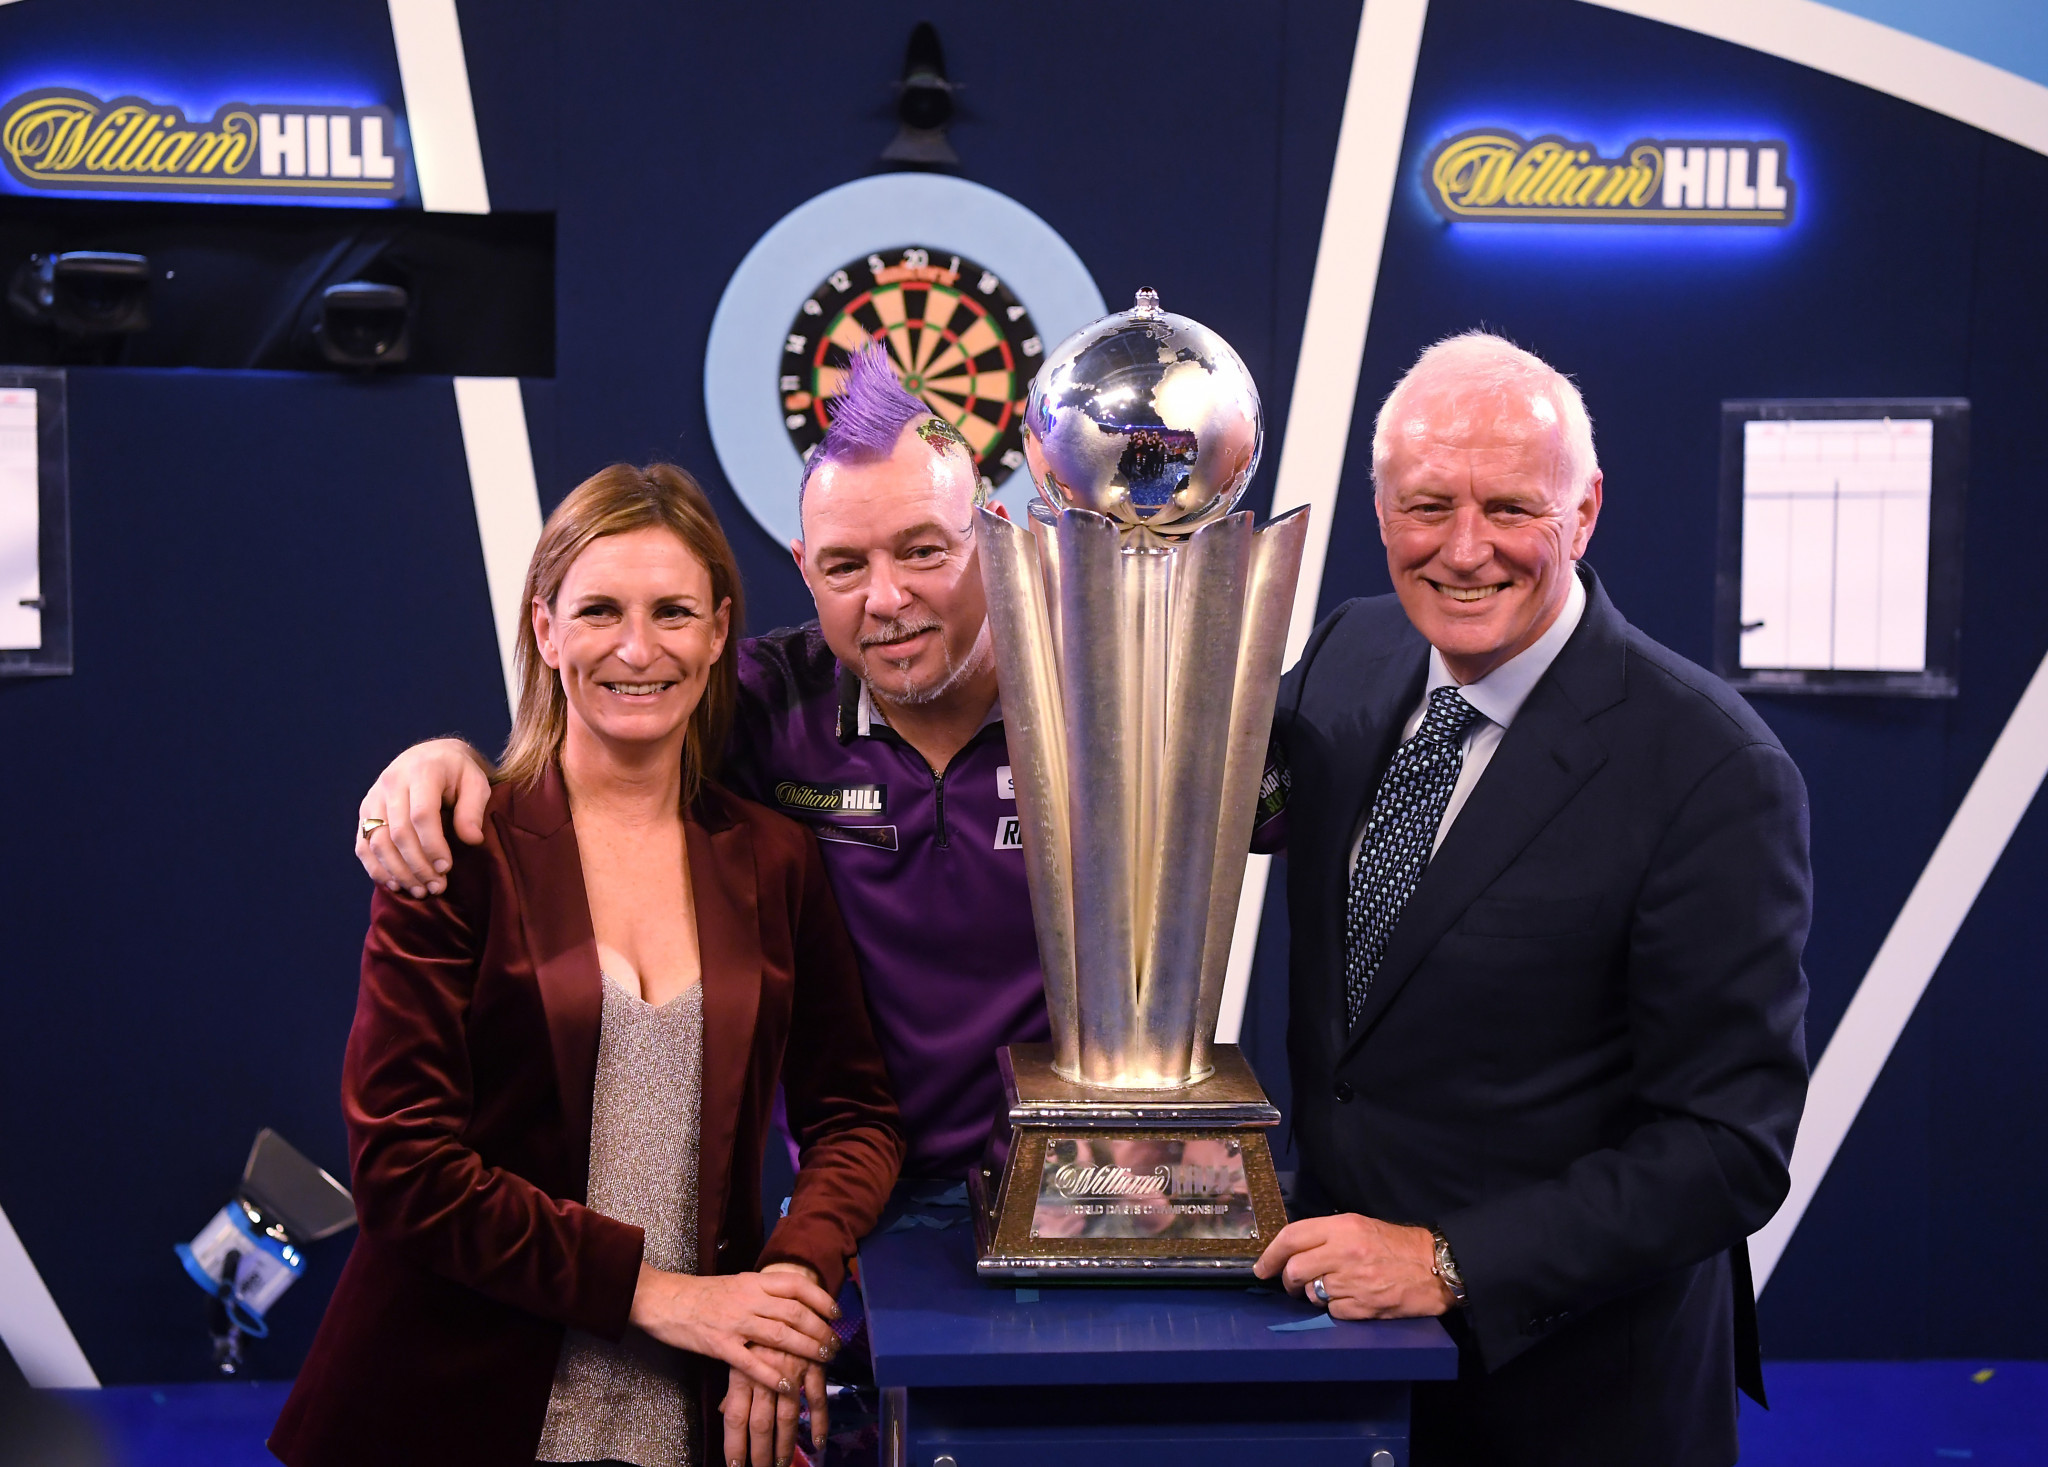 Wright seeks title defence at PDC World Darts Championship